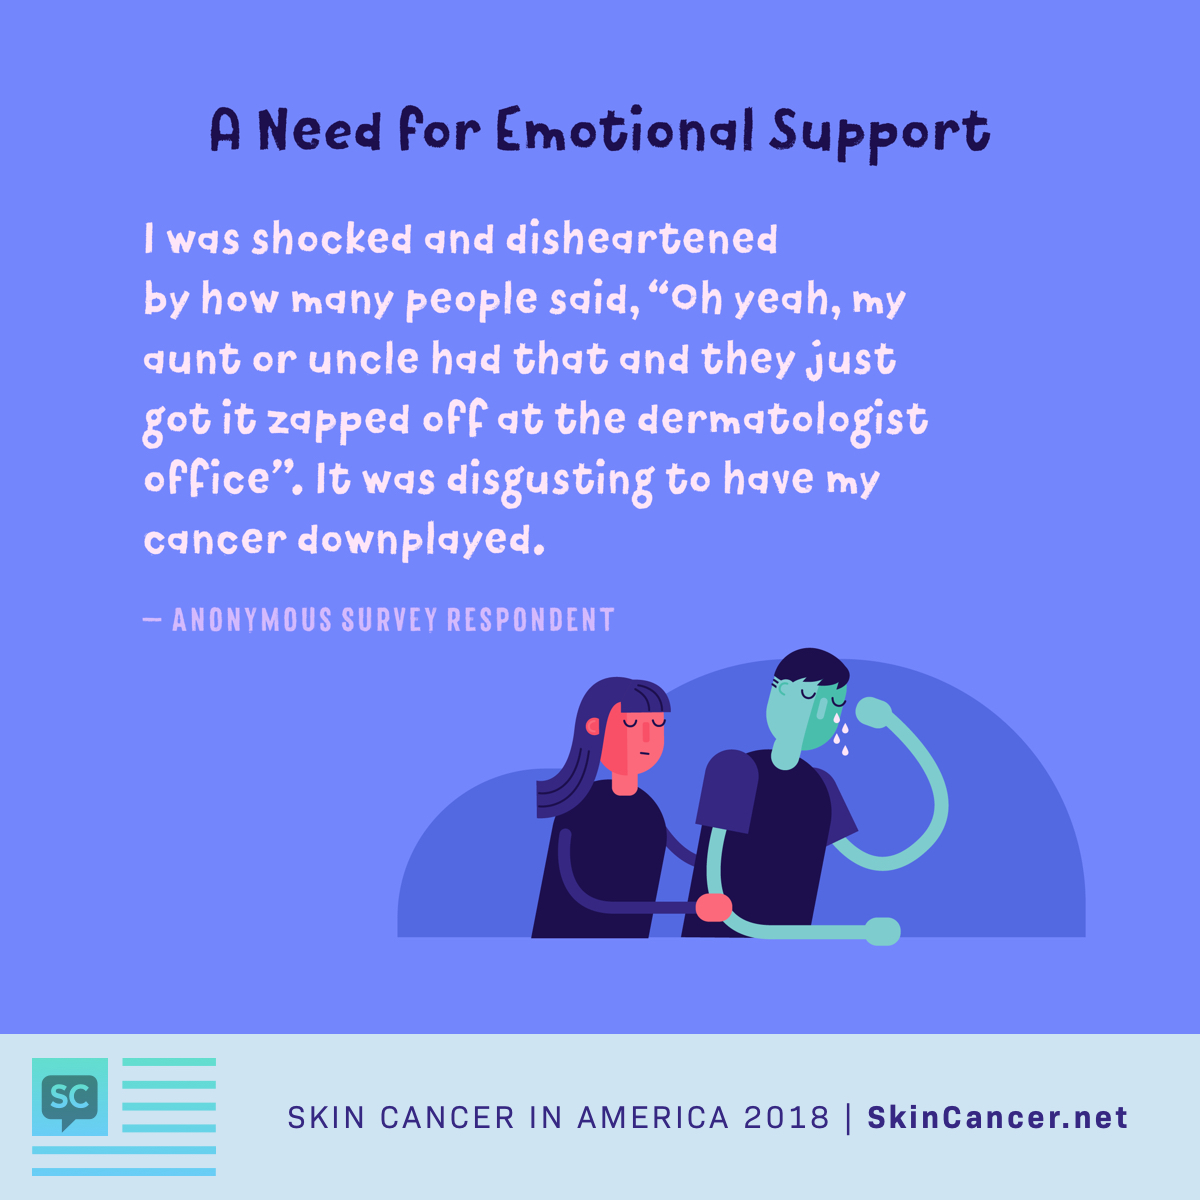 skin cancer need for emotional support